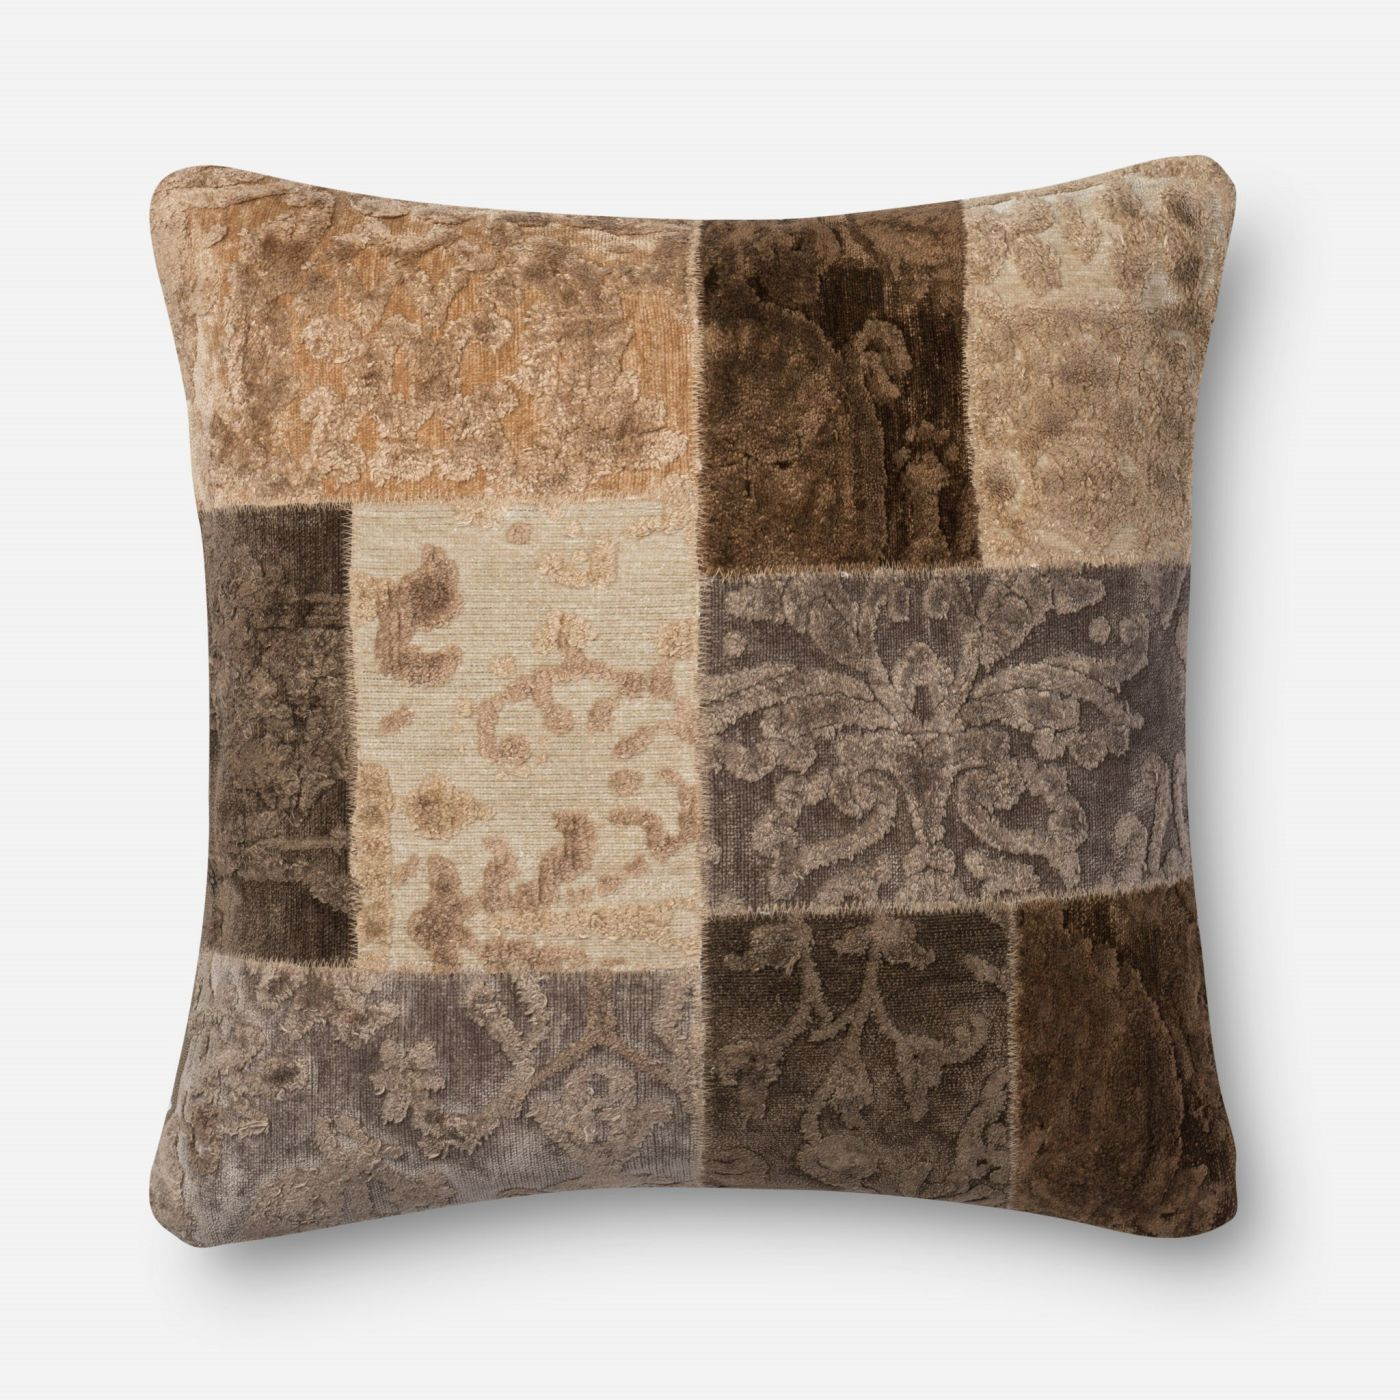 Throw Pillows Native American : Loloi Rugs Loloi Neutral Decorative Throw Pillow (OPI01) DSETOPI01NT00PIL3. Only $159.00 at ...